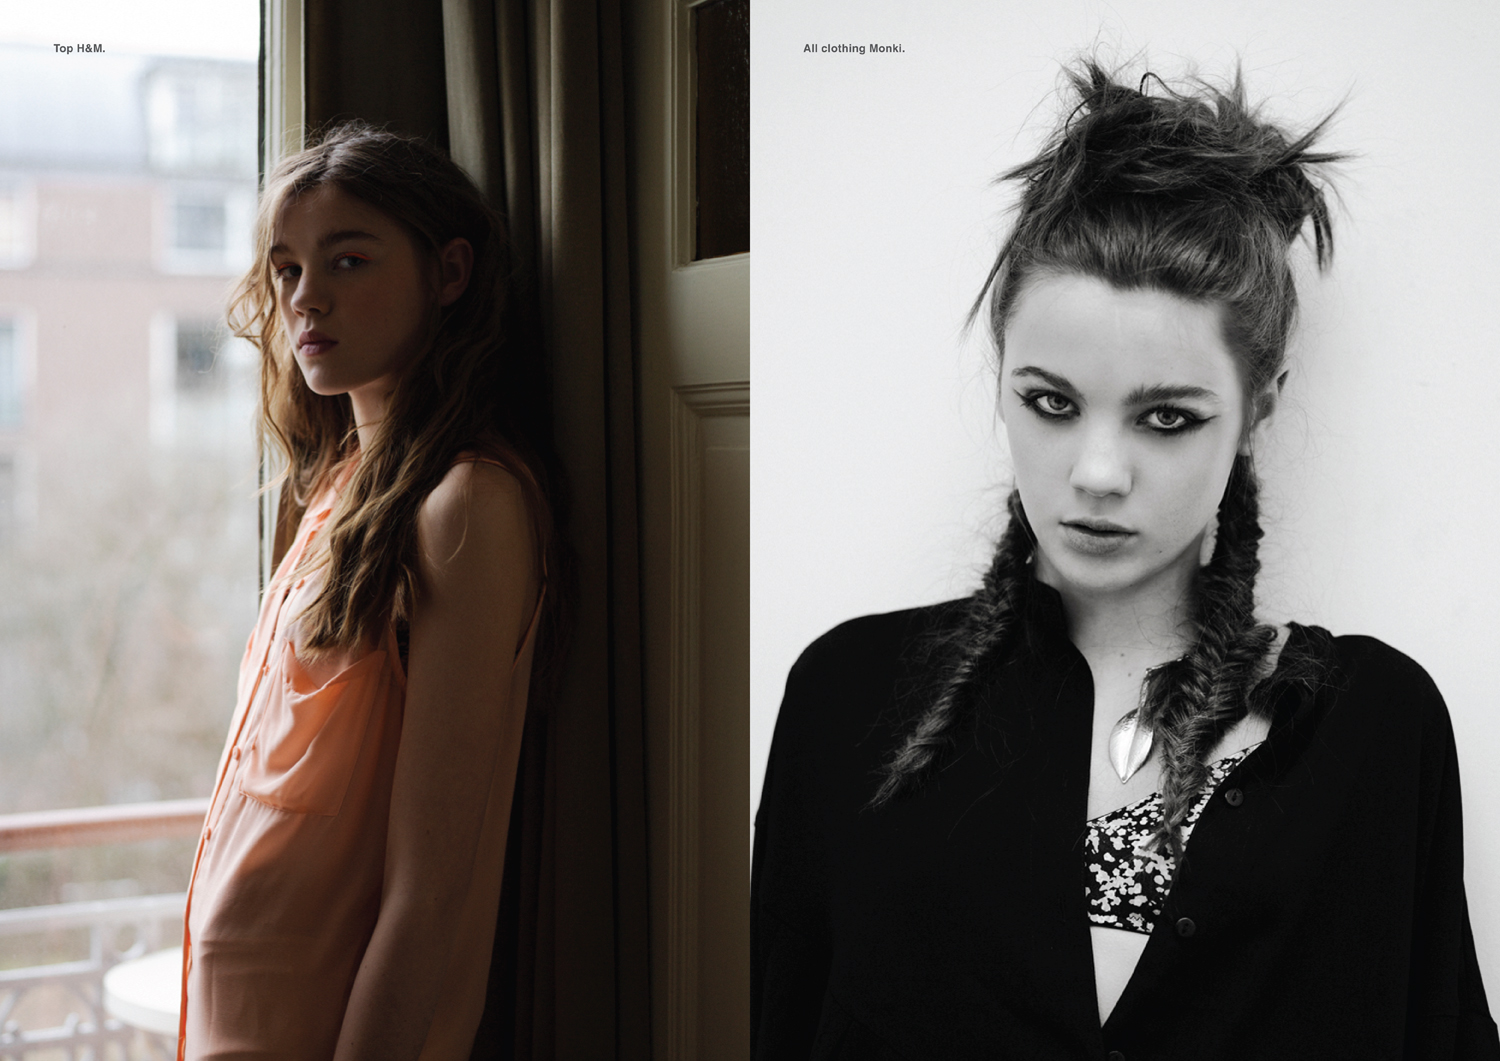 Left page, Top H&M. Right page, All clothing Monki.